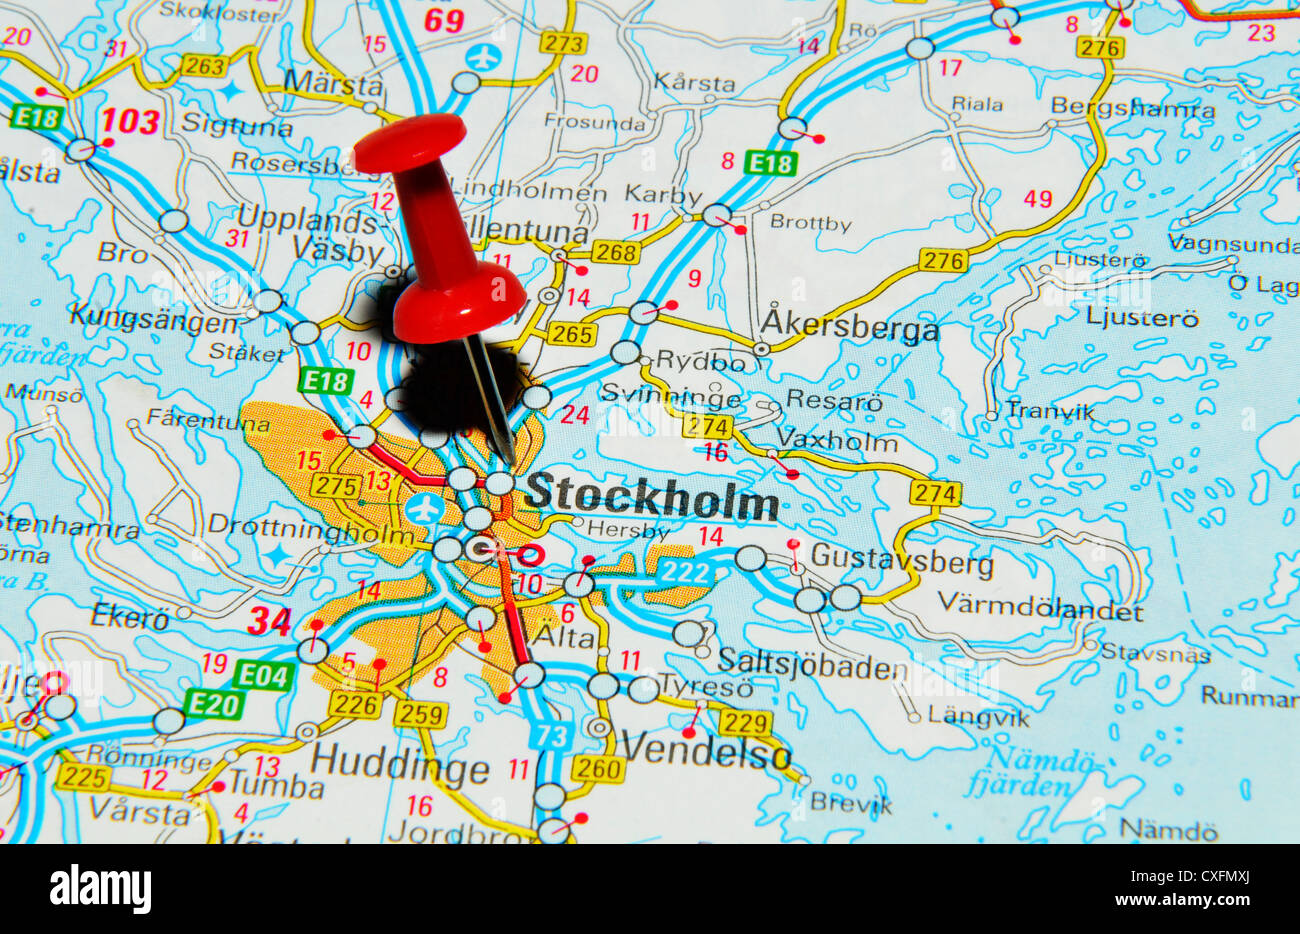 Stockholm On Map Stock Photo 50747498 Alamy